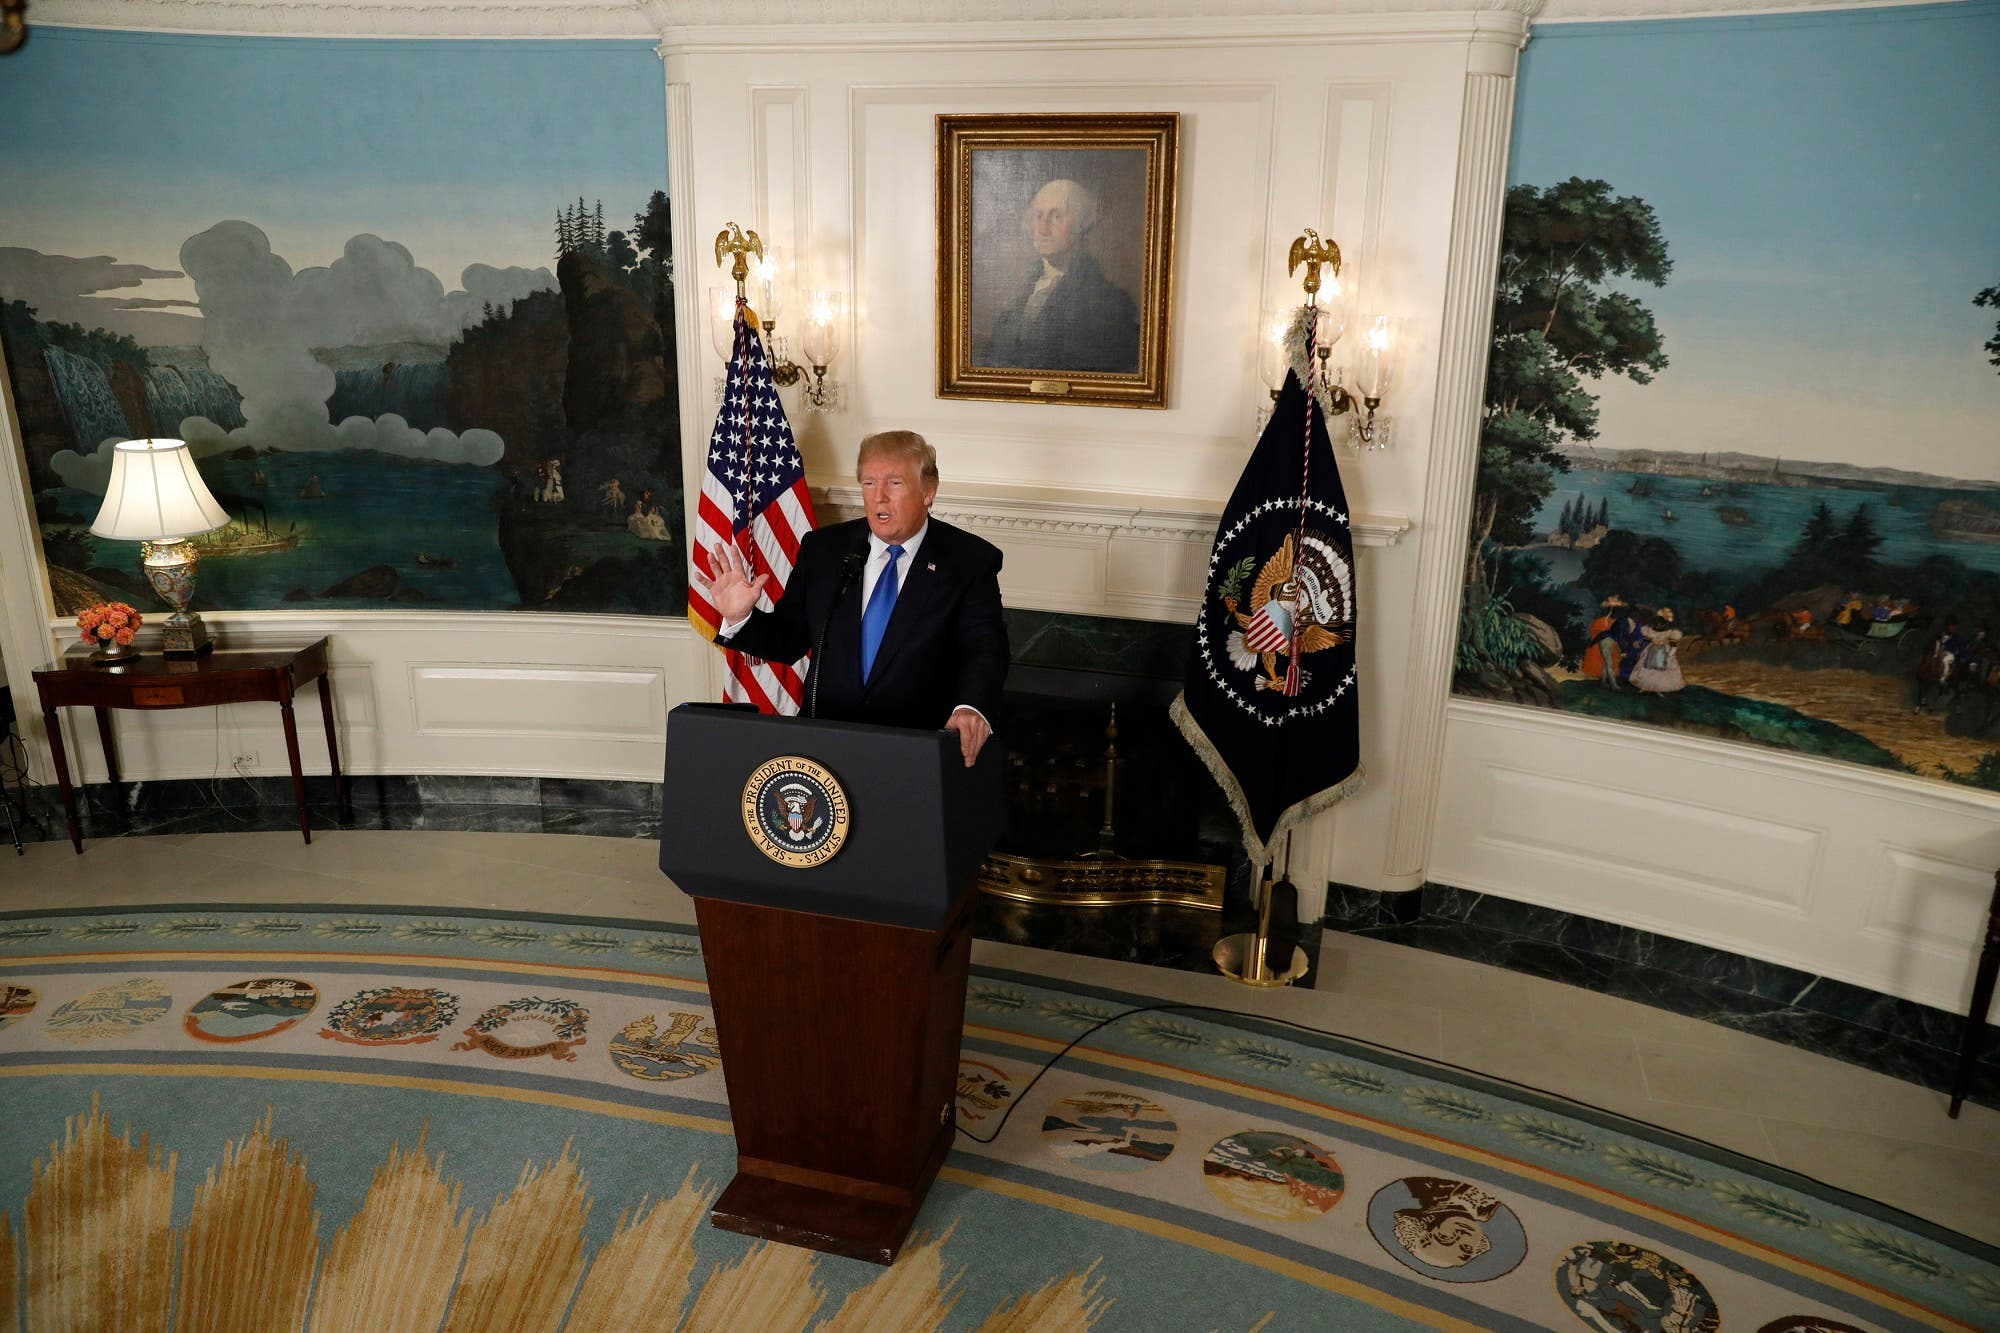 President Trump speaks about the Iran nuclear deal in the White House in Washington, on October 13, 2017. (Reuters)